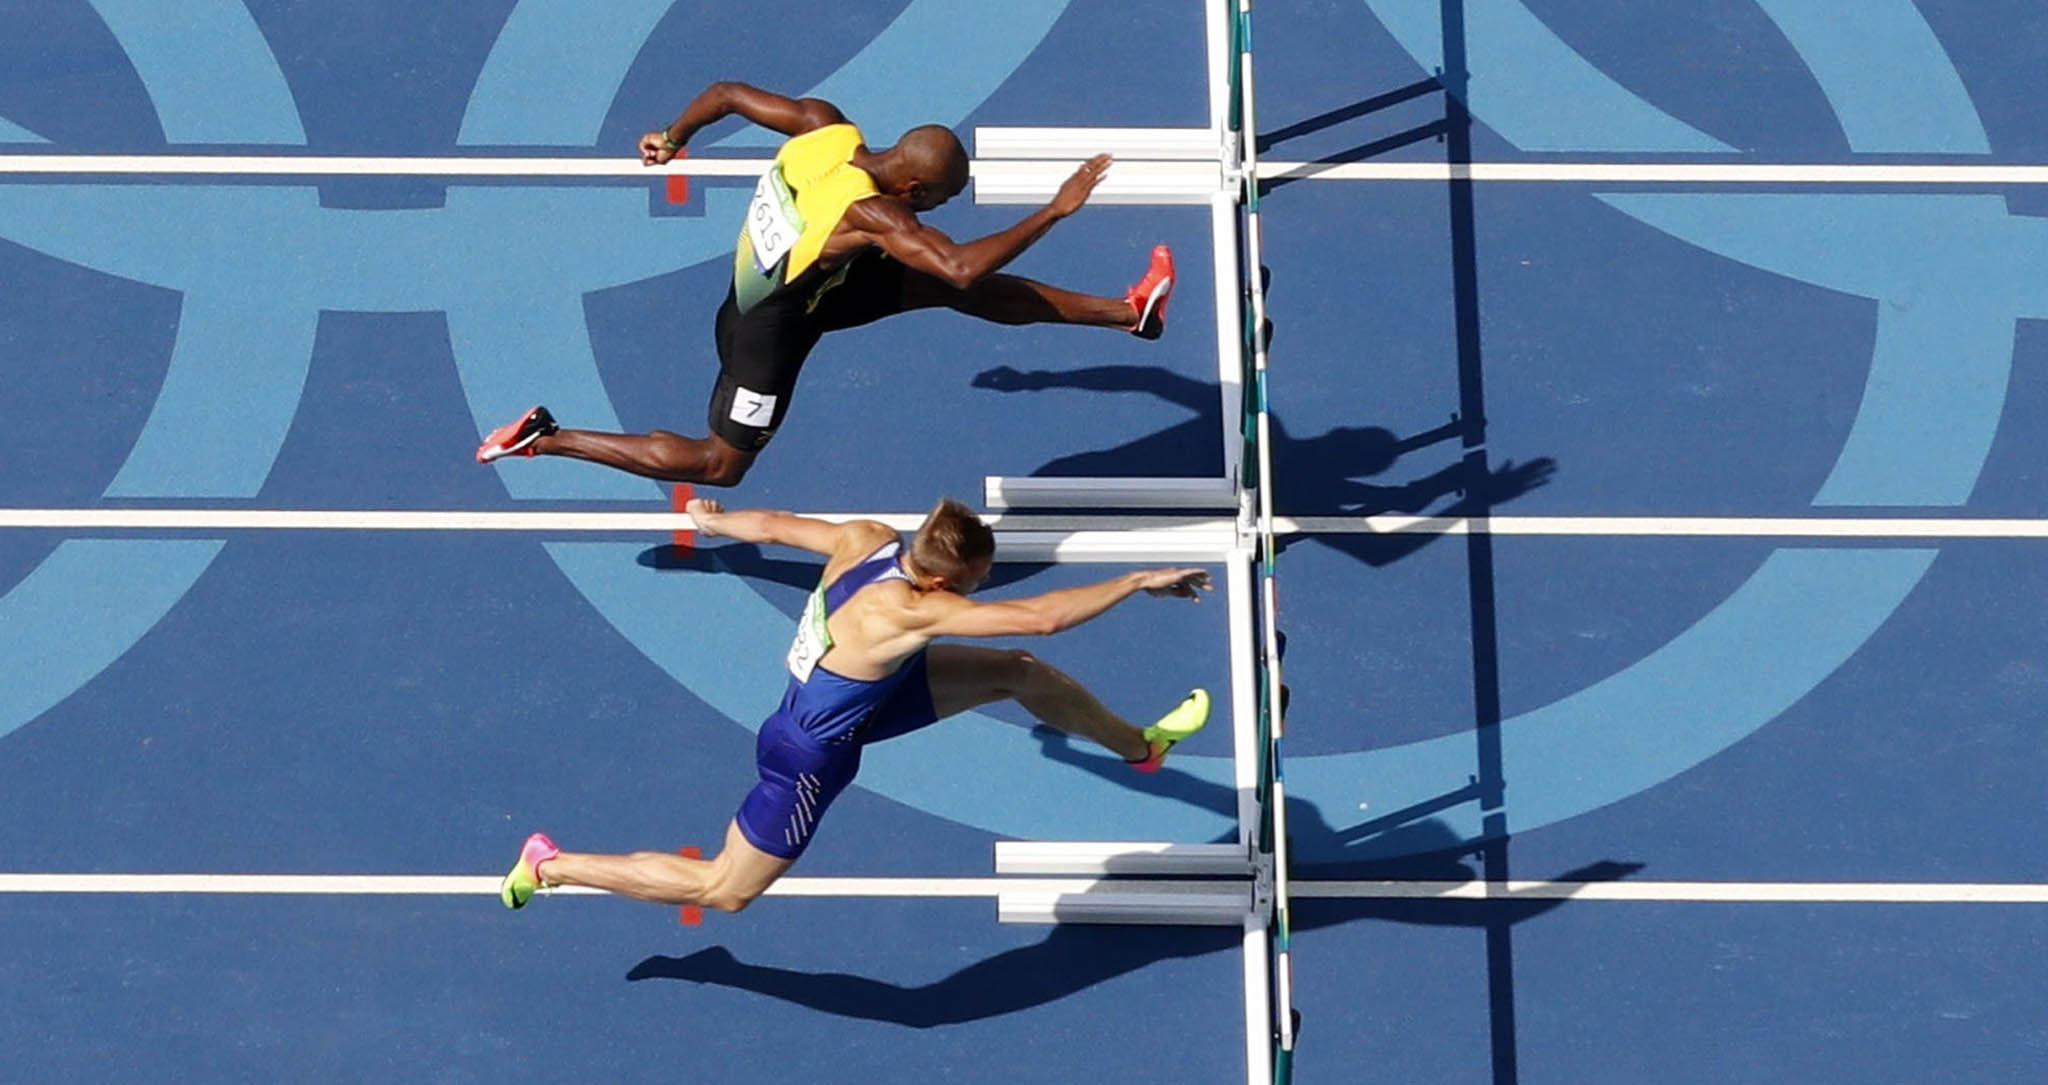 Competitors clear a hurdle during Round 1 of the Men's 40m Hurdles at the Olympic Stadium